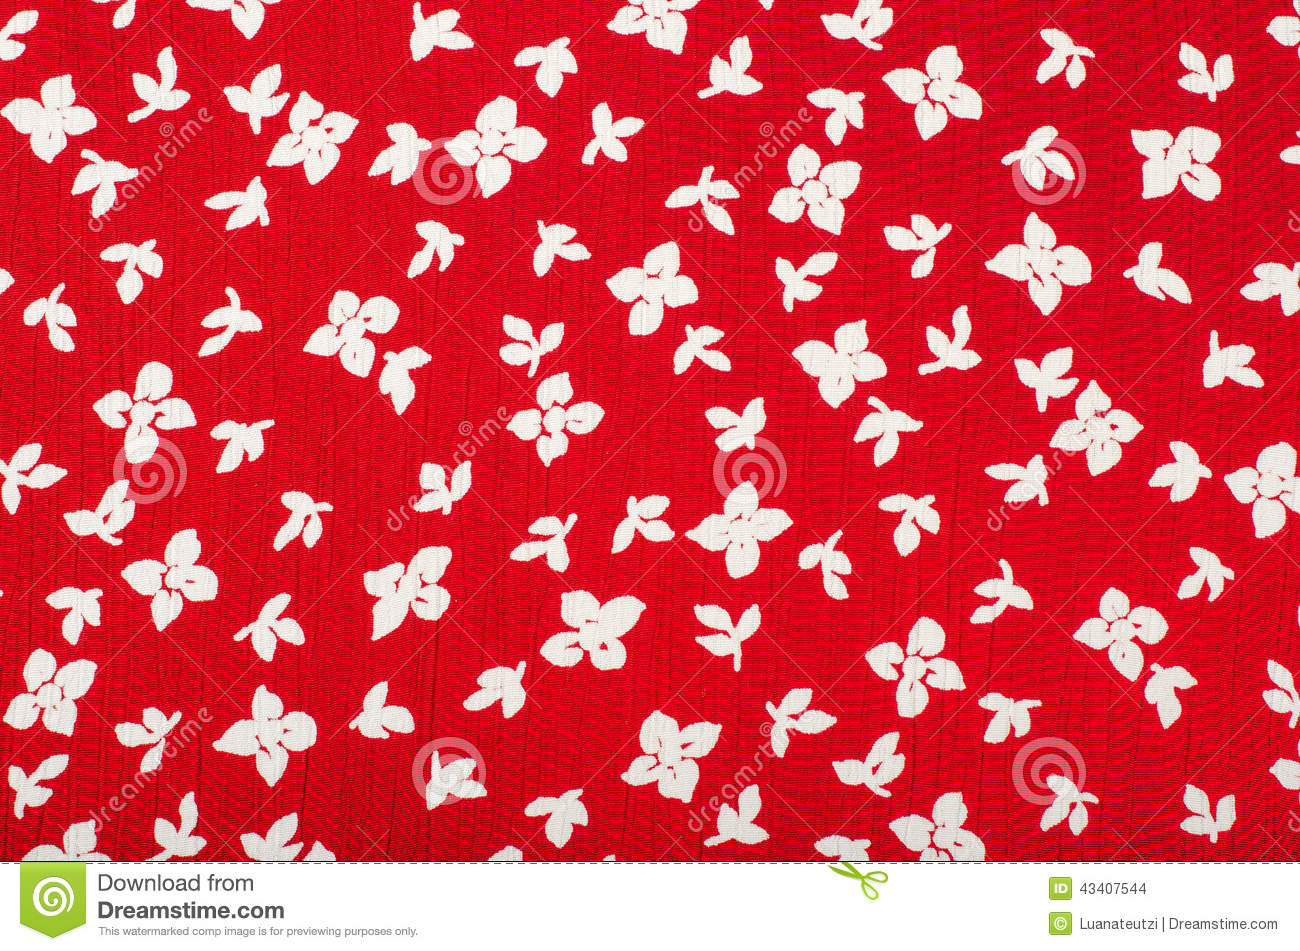 Floral pattern red and white flowers print as background stock floral pattern red and white flowers print as background mightylinksfo